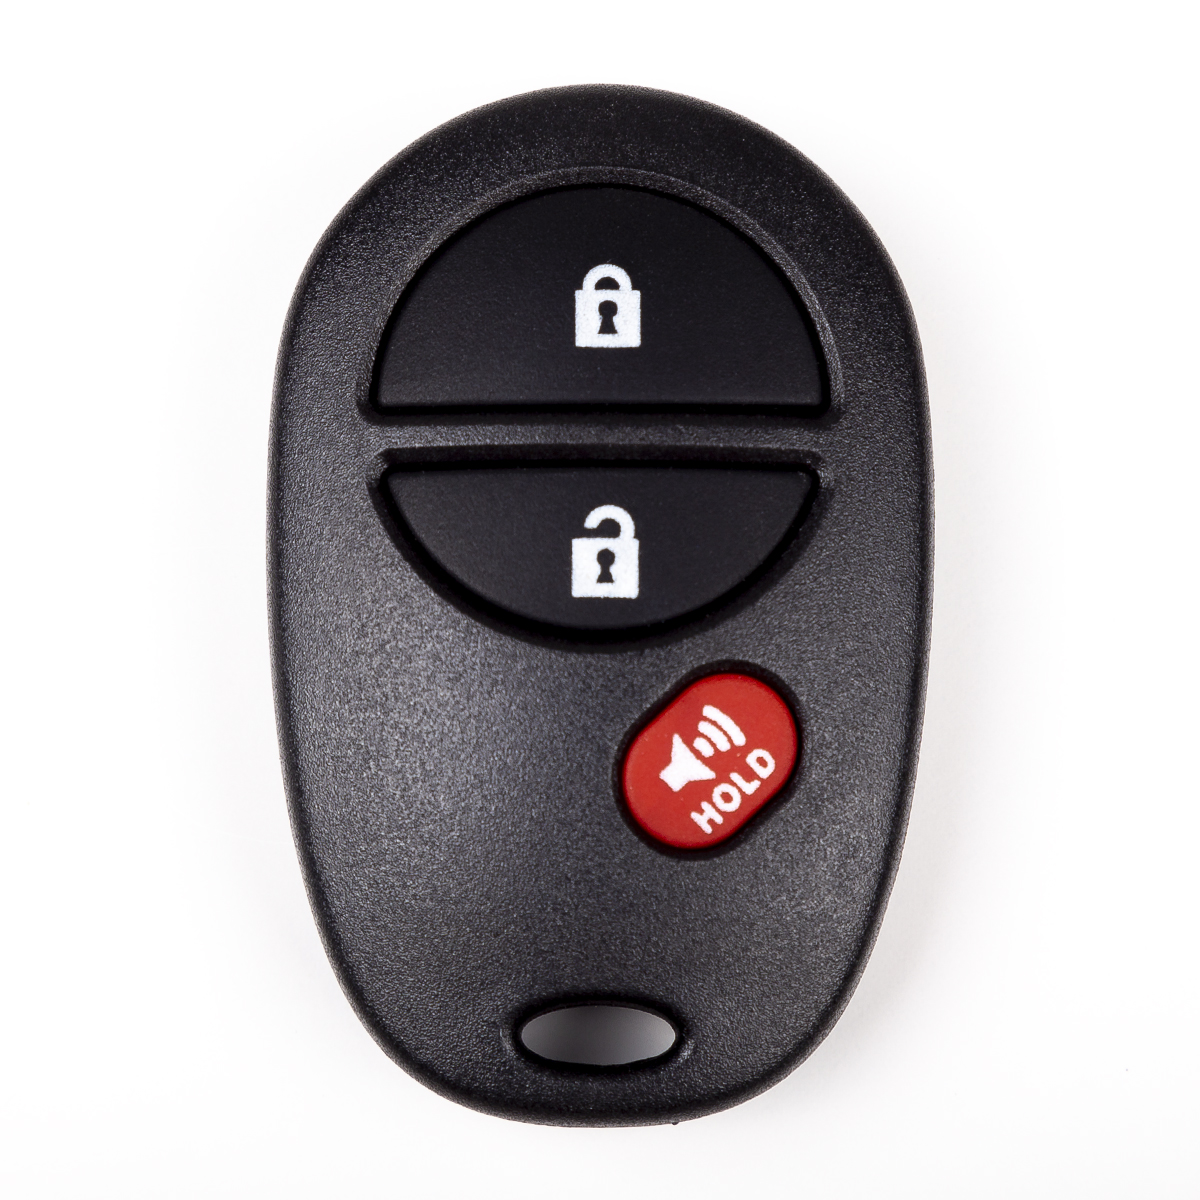 New 3-button Keyless Entry Remote Replacement for Original Toyota Remote With FCC-ID GQ43VT20T